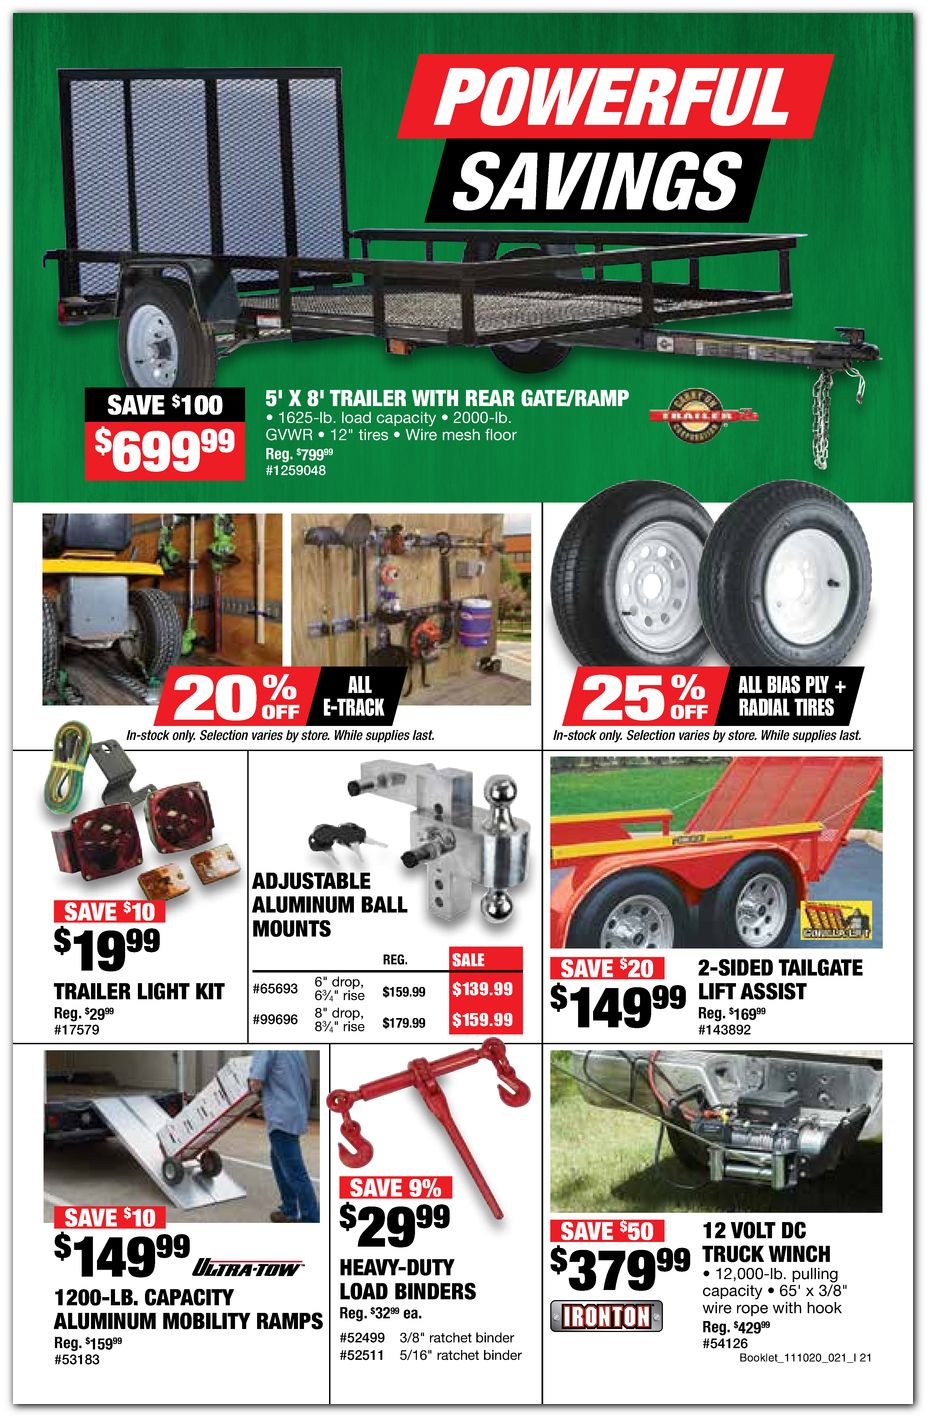 Trailer / Tires / Winch